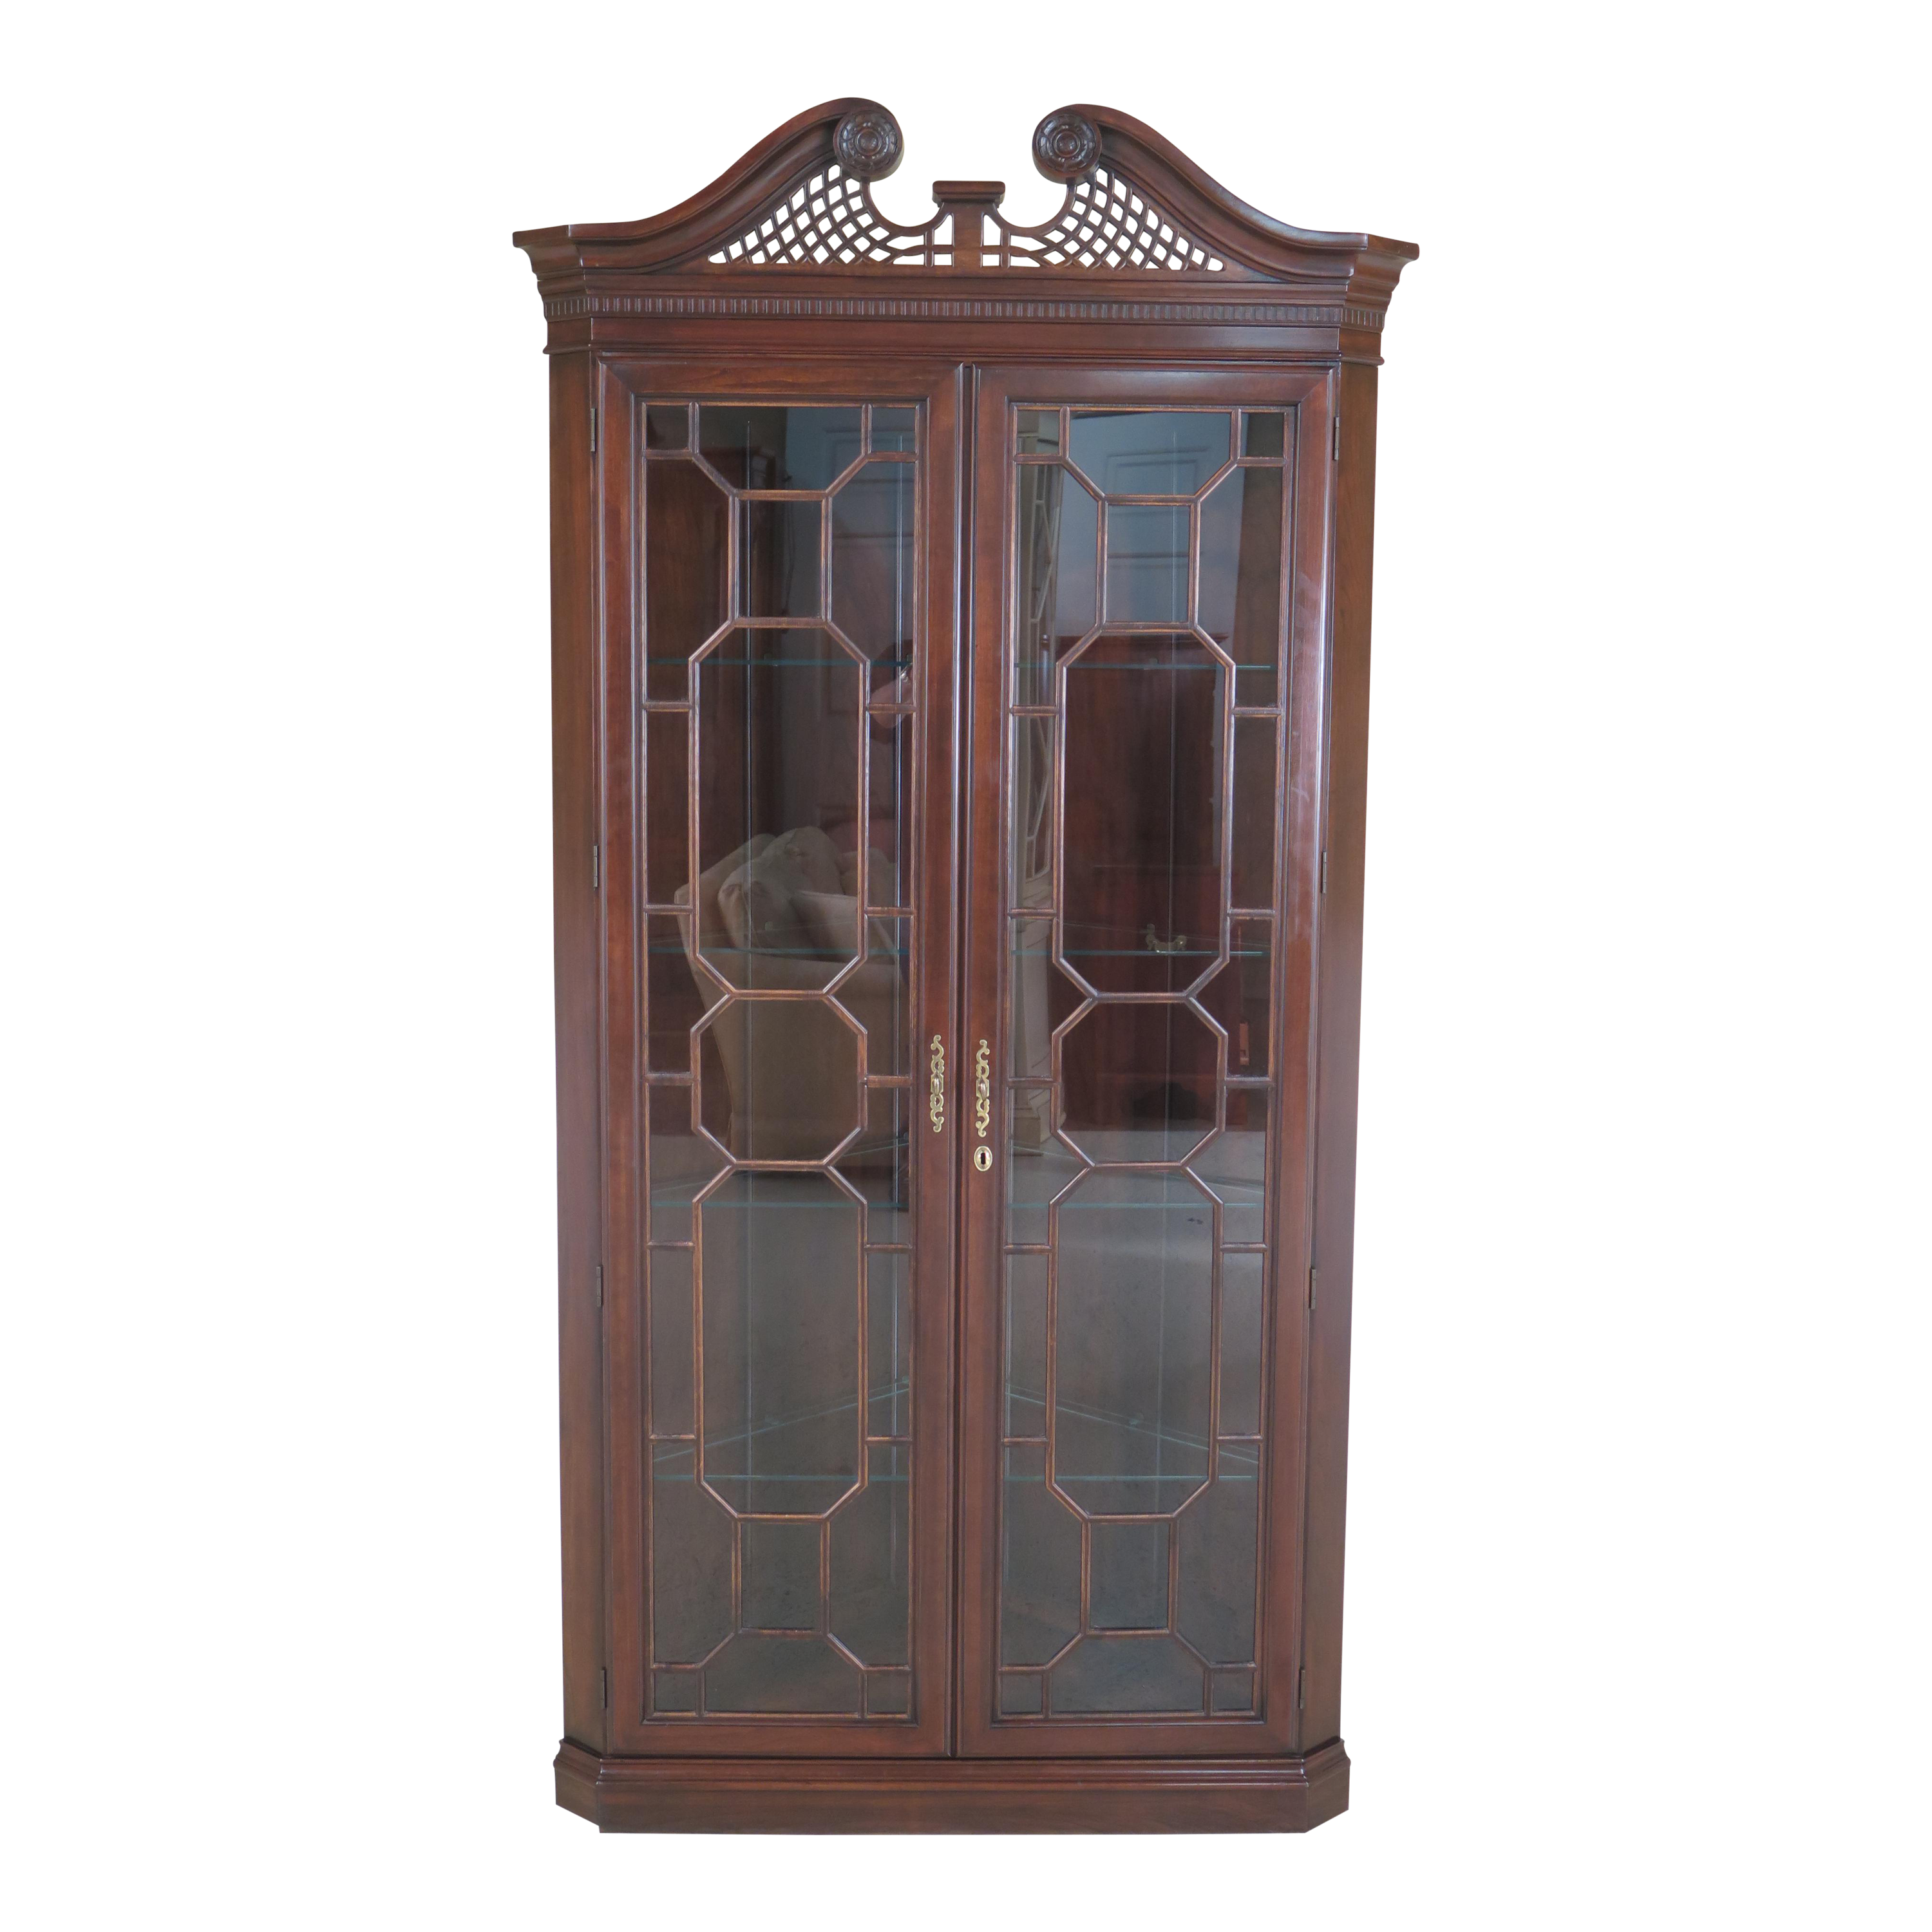 of cabinet america home traditional shipping corner free product furniture lighted garden walnut curio today overstock jora